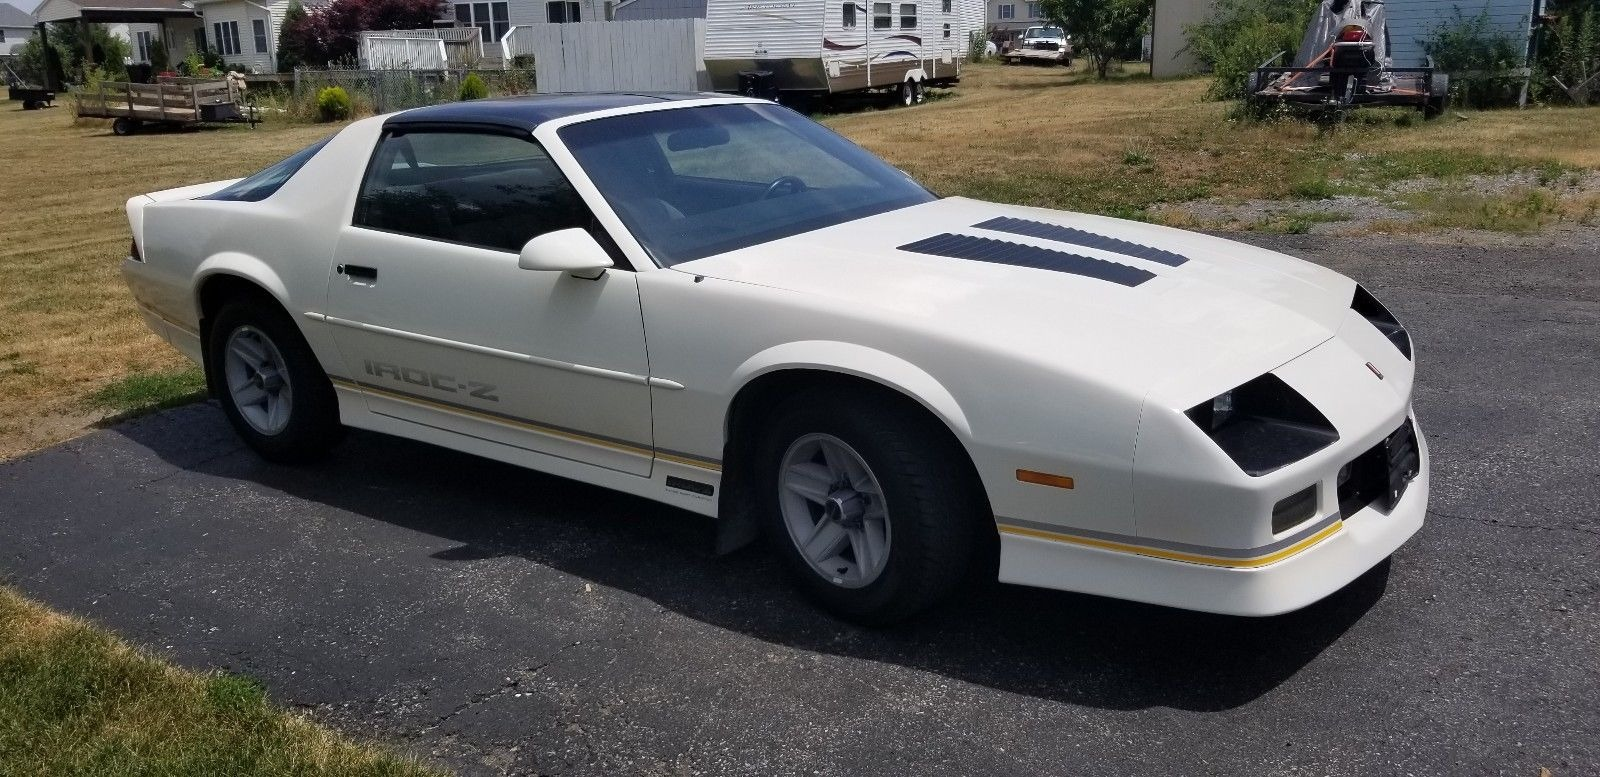 Used 1988 Chevrolet Camaro -IROC Z-CLEAN 2DOOR HATCHBACK-1 OWNER VEHICLE-CLEAN CARFAX- | Mundelein, IL